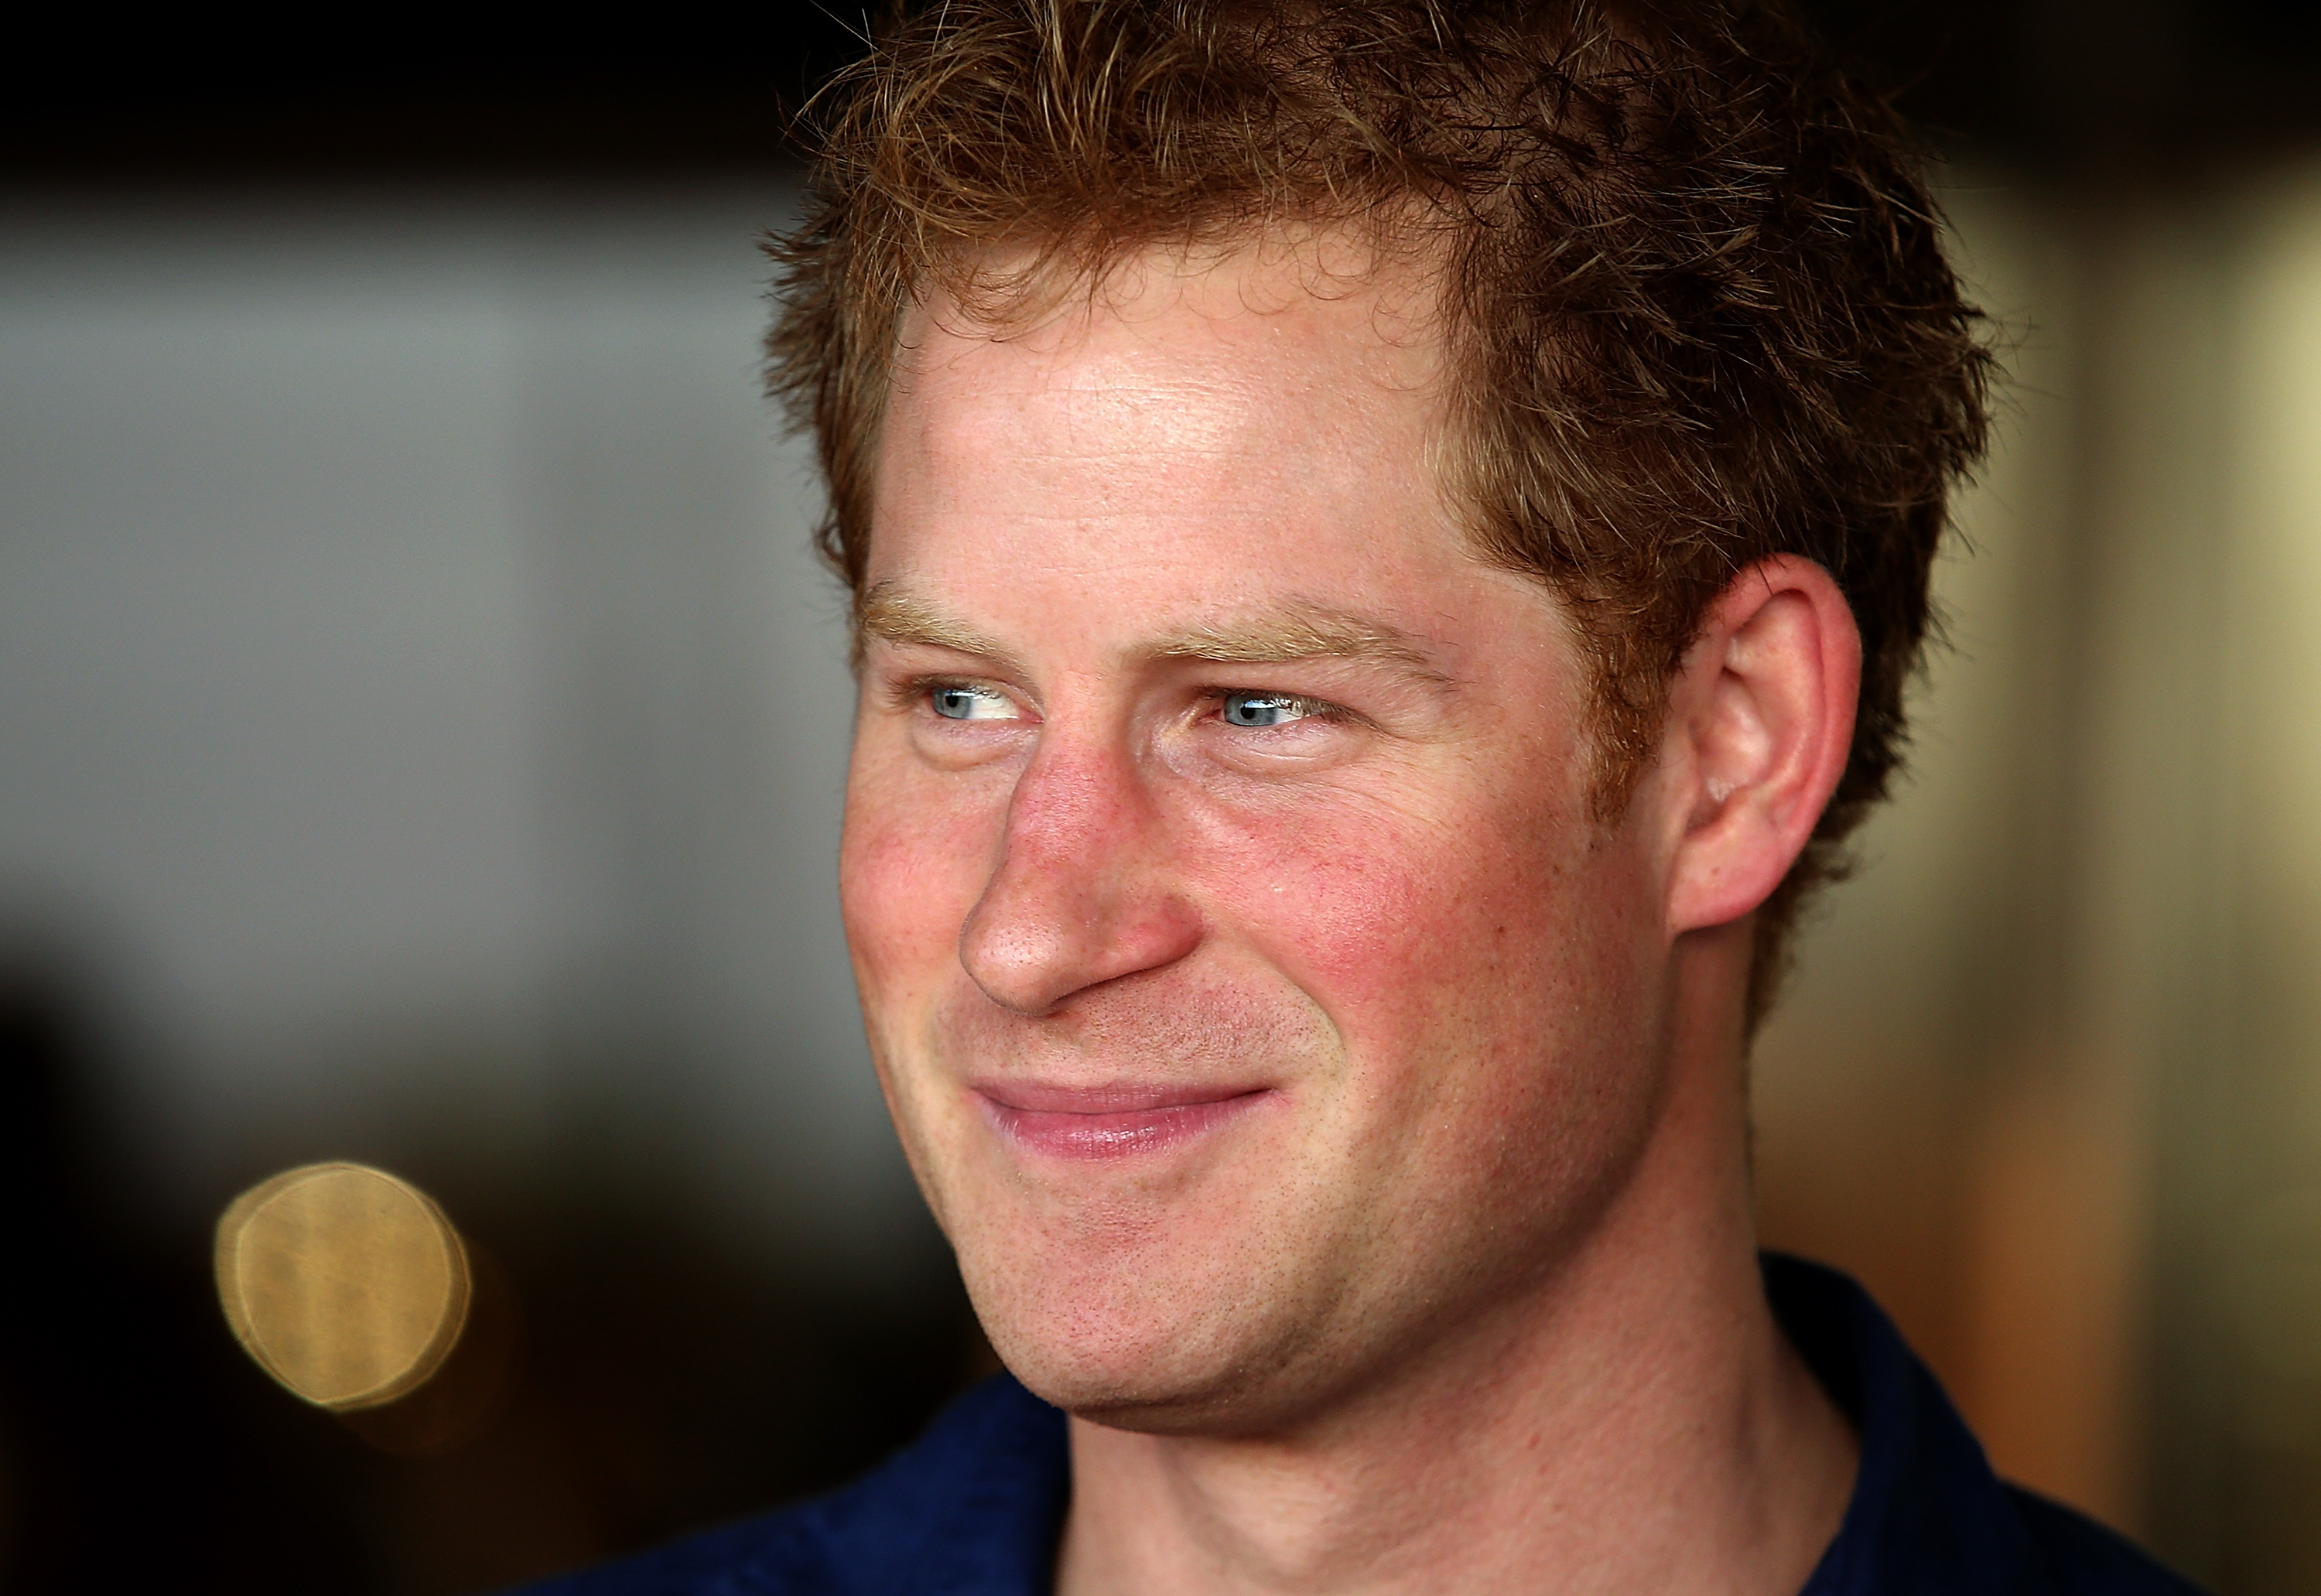 Prince Harry On Nude Pics: Too Much Army, Not Enough